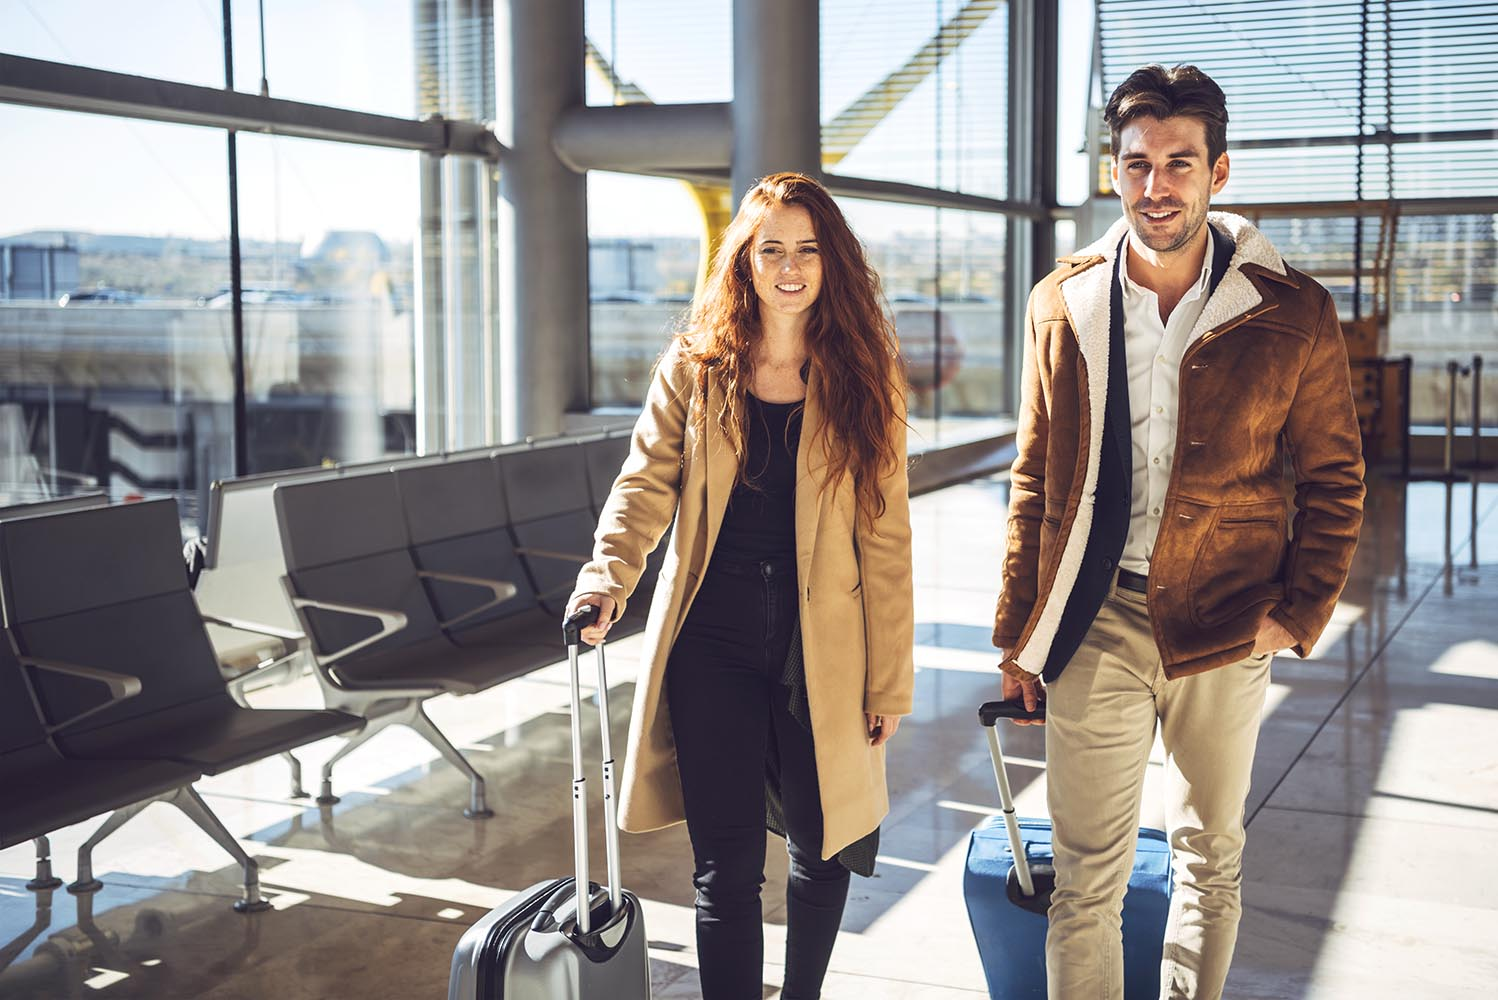 Cheerful couple walking in terminal